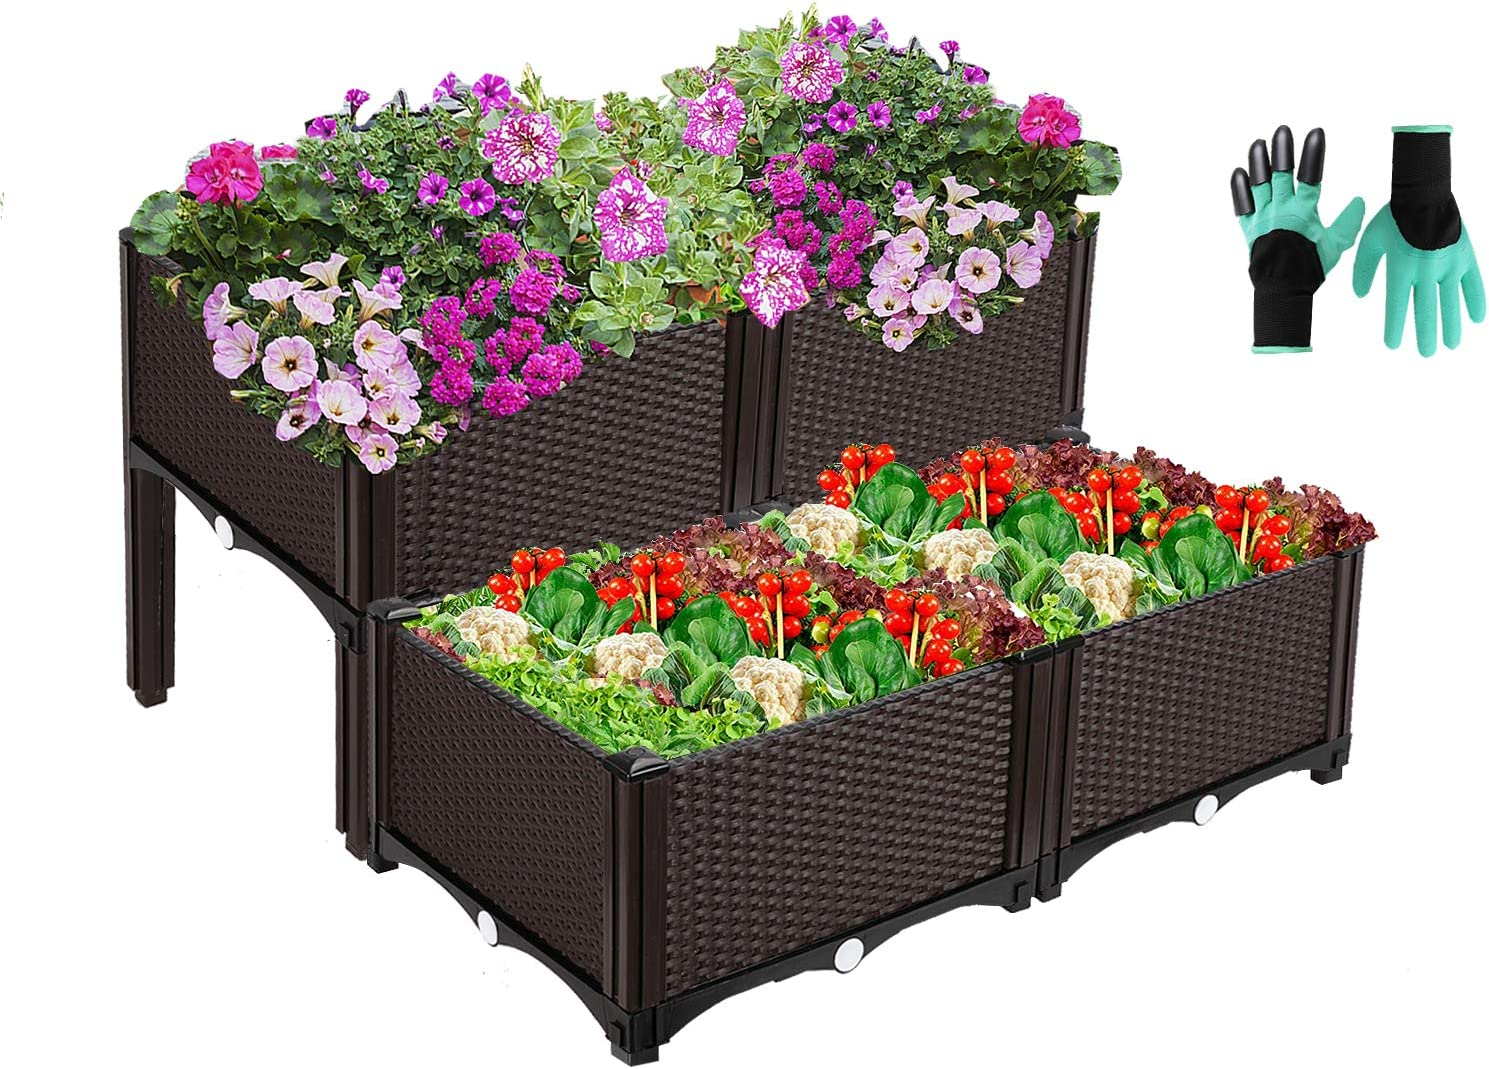 Set of 4 Plastic Raised Garden Bed Kit, Self Watering Planters Box with Free Gloves for Herbs Vegetables Flowers Strawberry Grow, Elevated Planting Container with Legs for Indoor & Outdoor Use, Brown